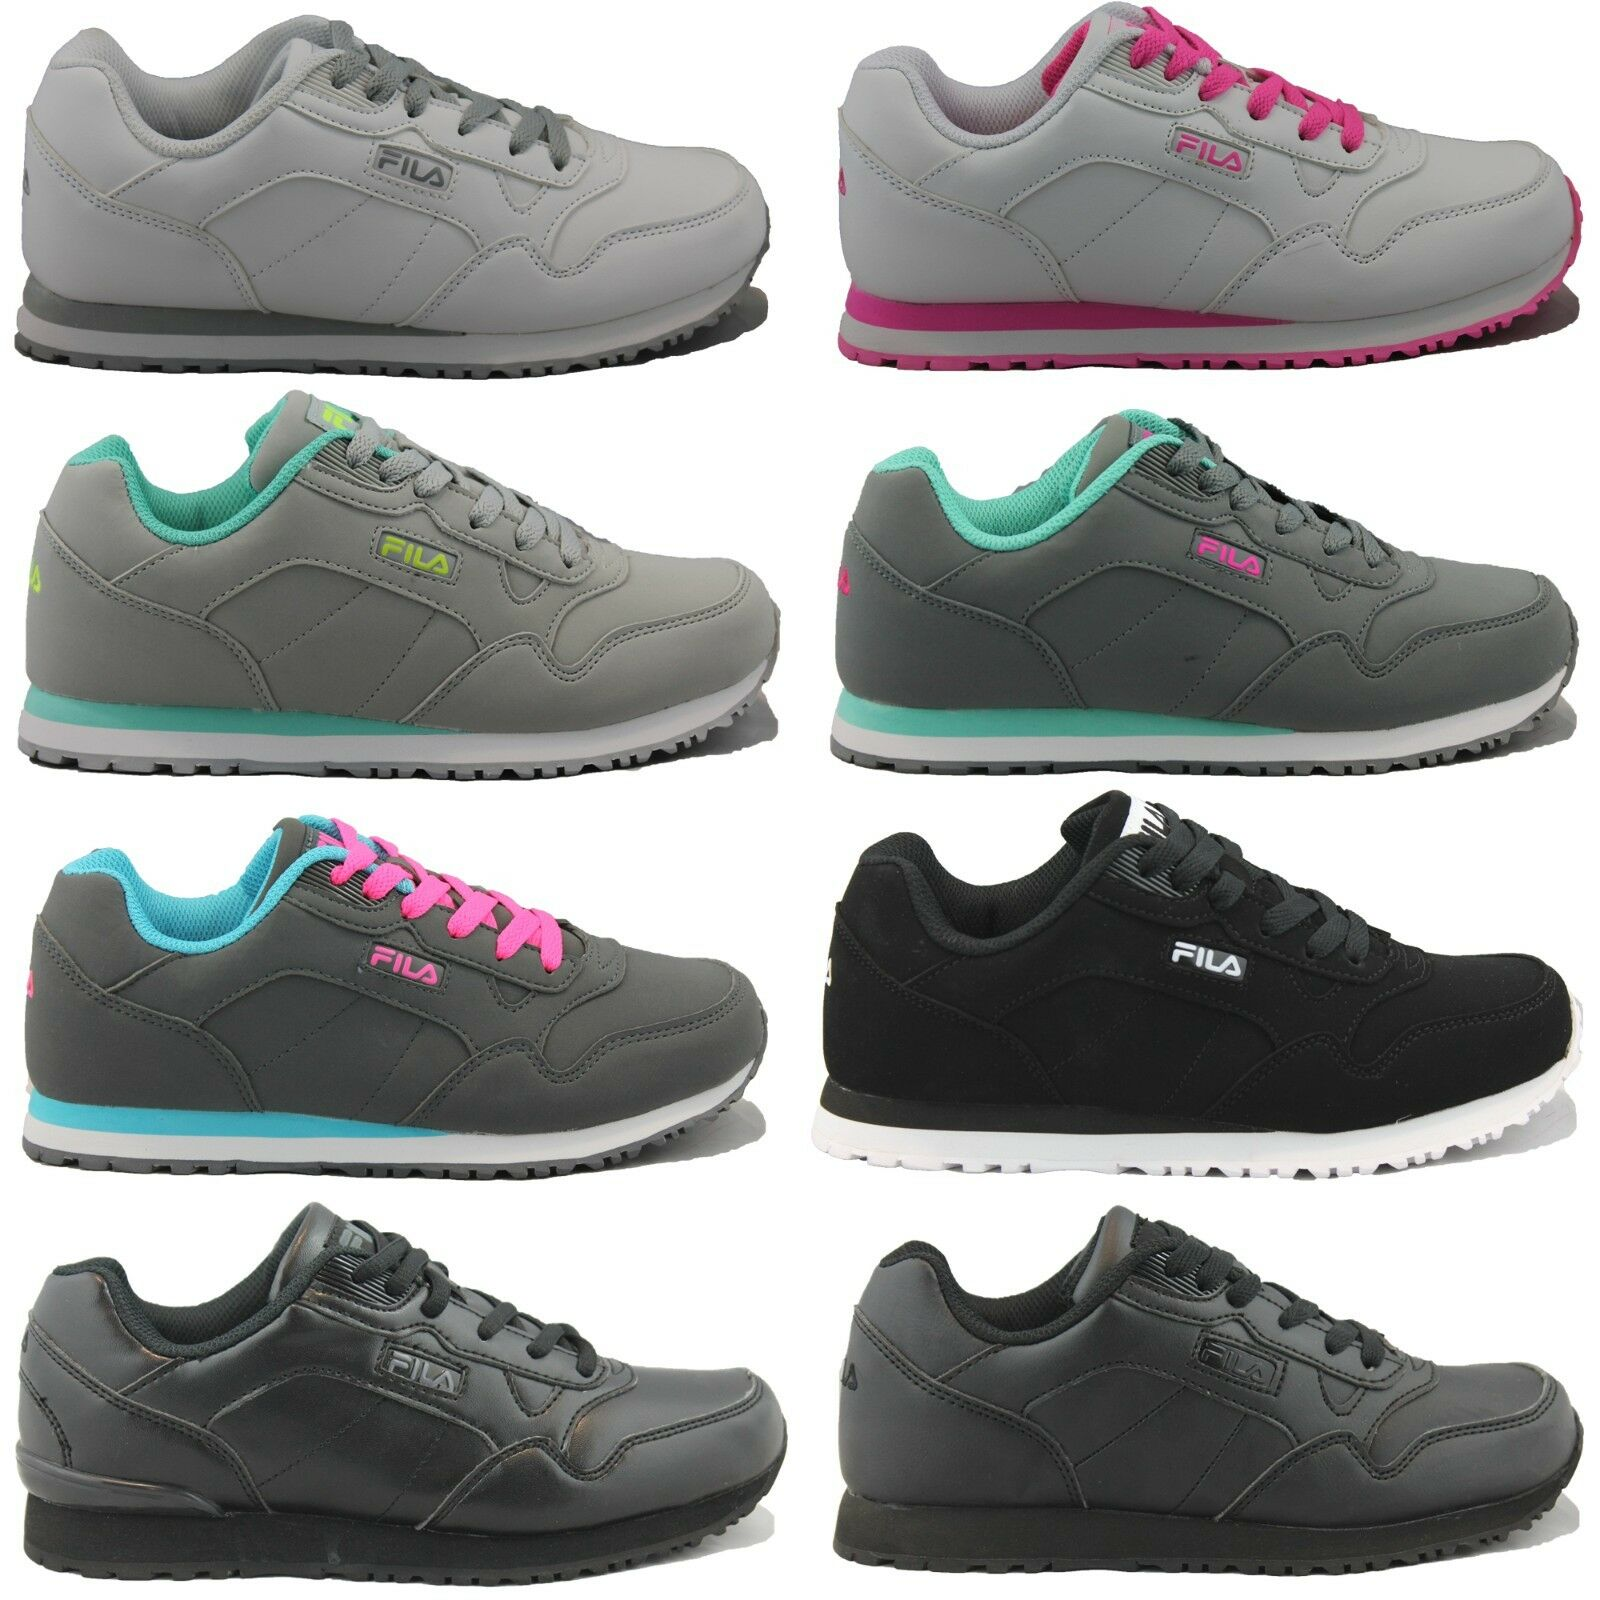 Womens FILA Cress Casual Athletic Classic Retro Silhouette Shoes Sneakers NEW Great discount